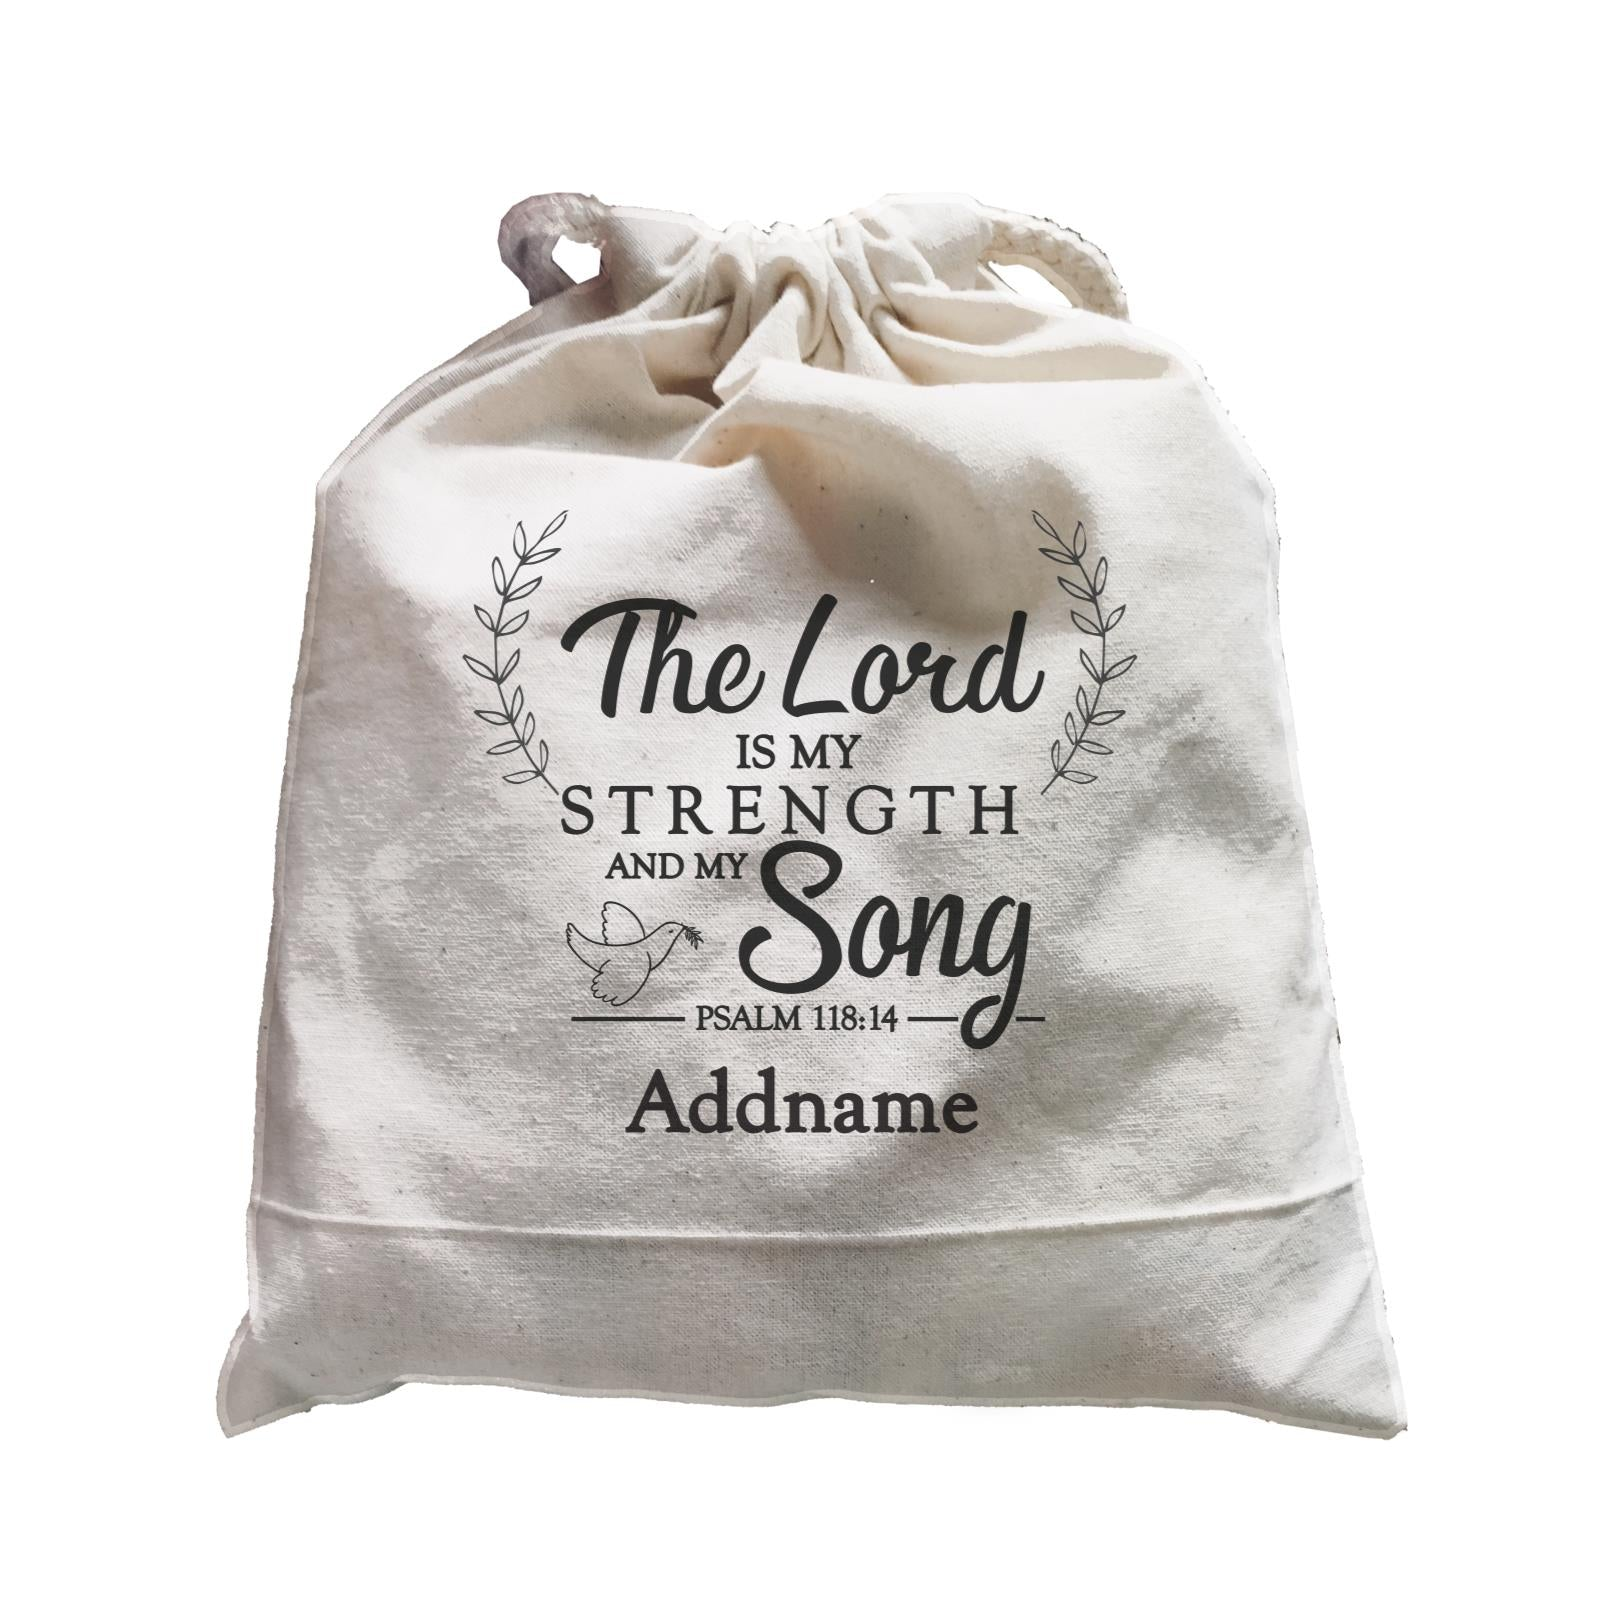 Christian Series The Lord Is My Strength Song Psalm 118.14 Addname Satchel